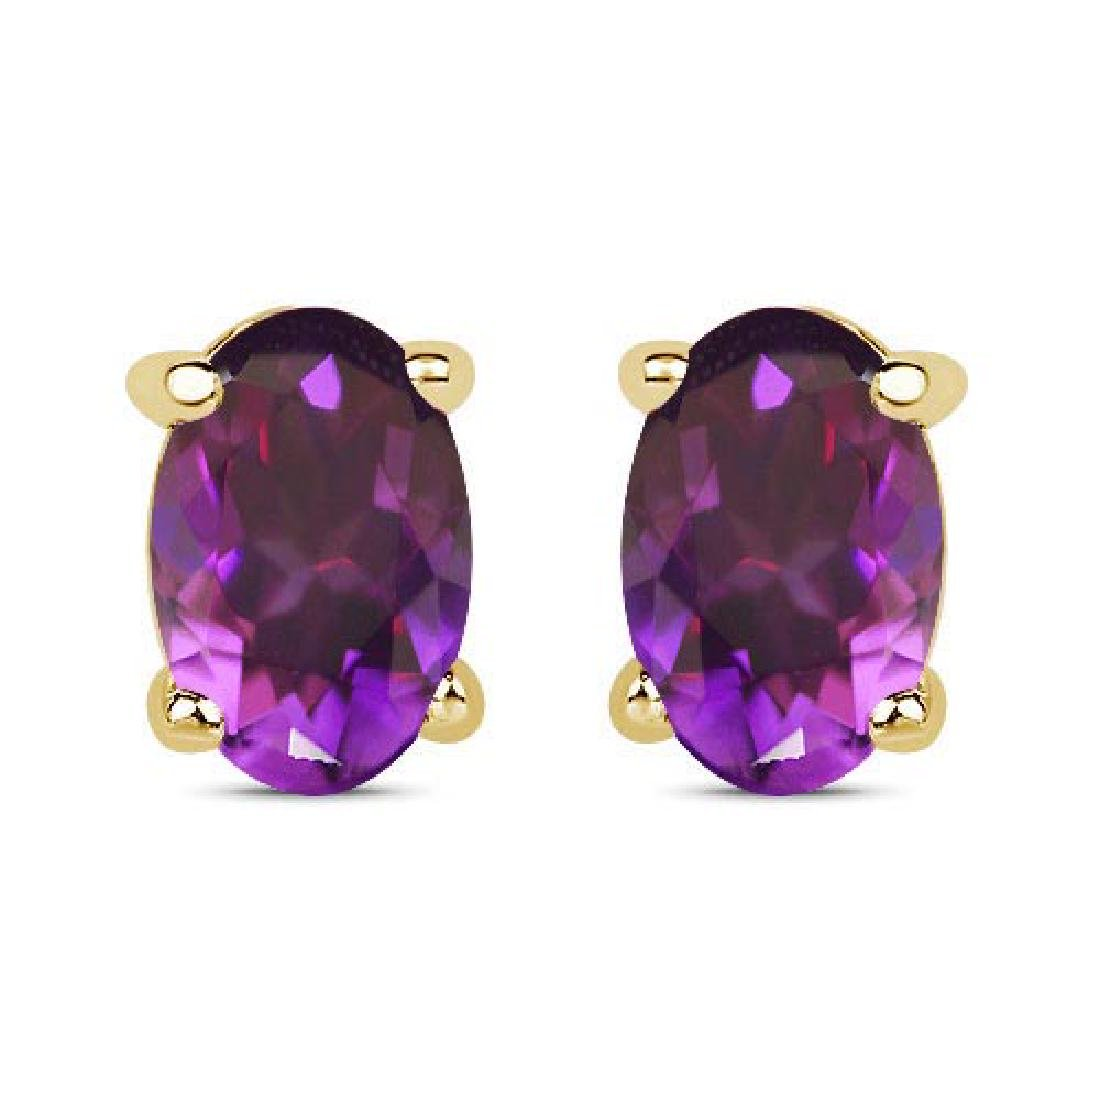 Certified 4.20 CTW Genuine Amethyst And 14K Yellow Gold